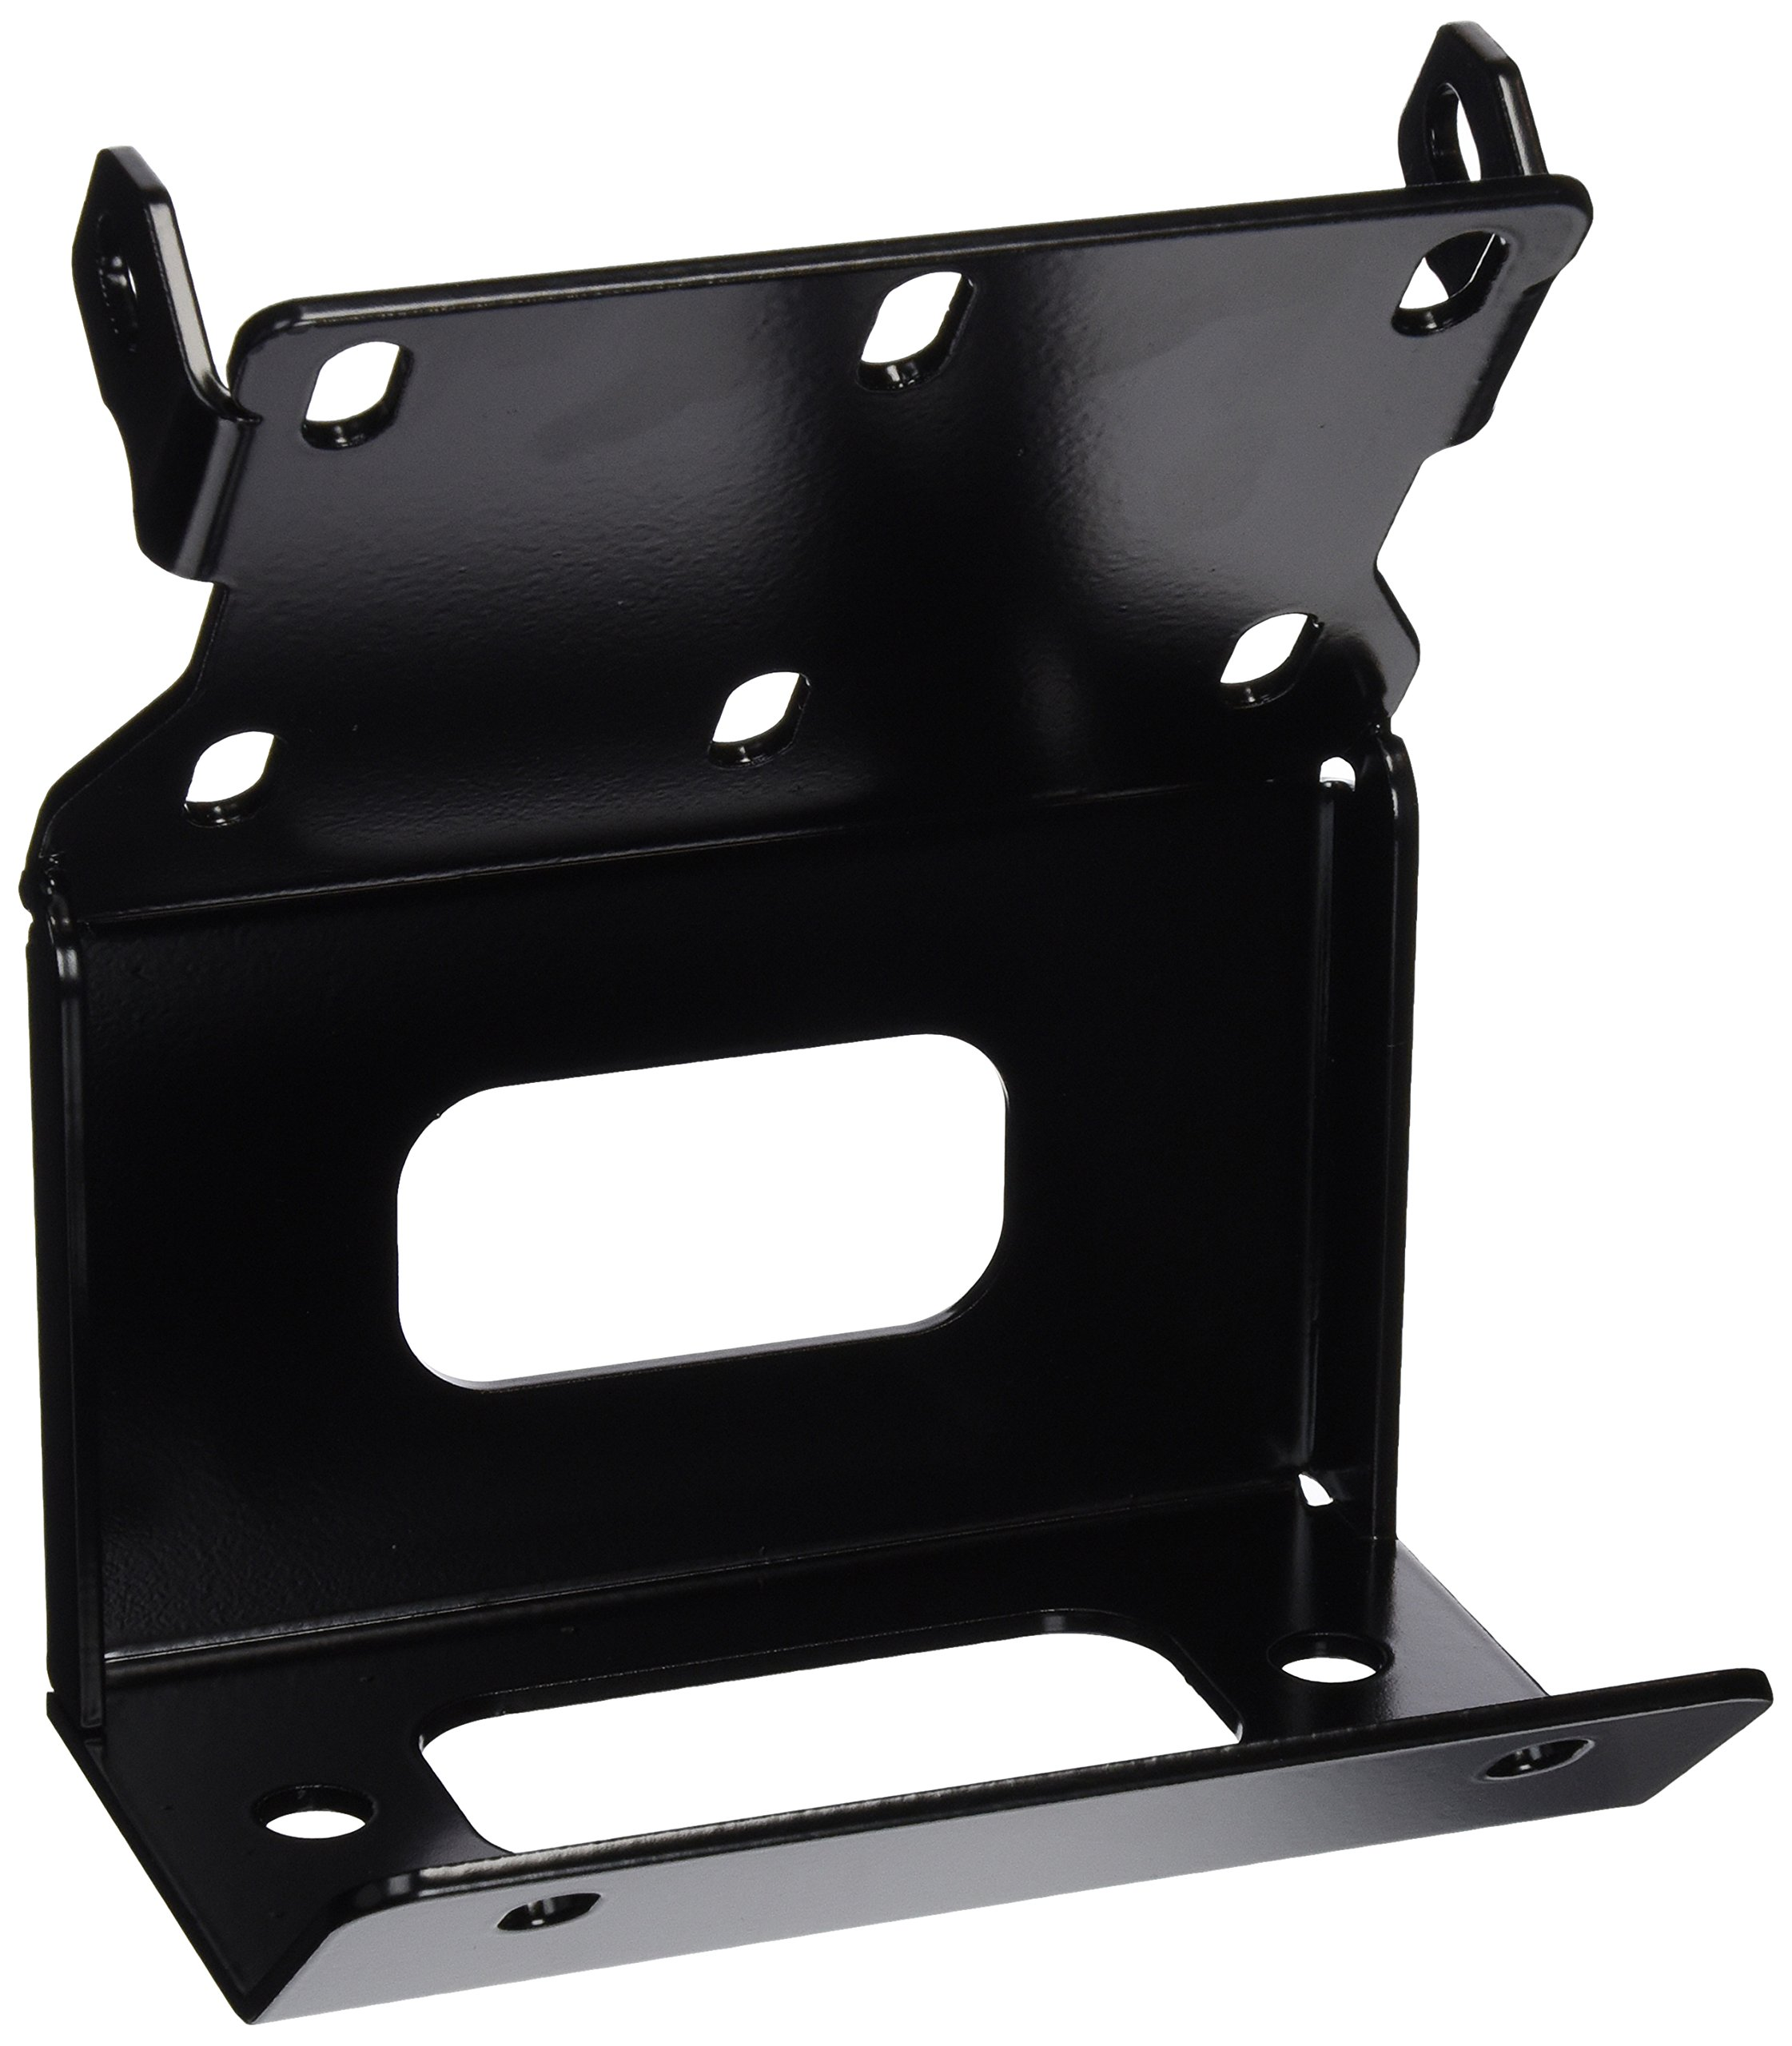 KFI Products 101175 Winch Mount by KFI Products